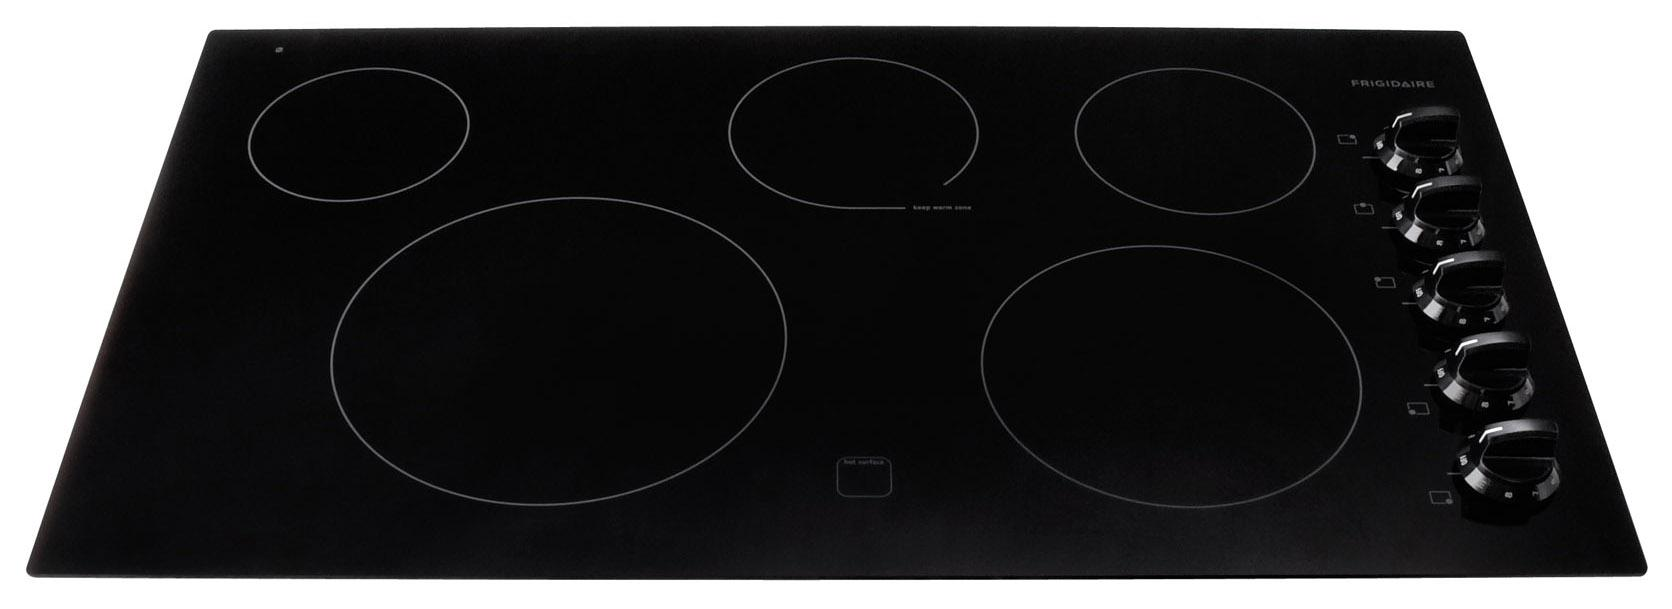 "Frigidaire Electric Cooktops 36"" Built-In Electric Cooktop - Item Number: FFEC3625LB"